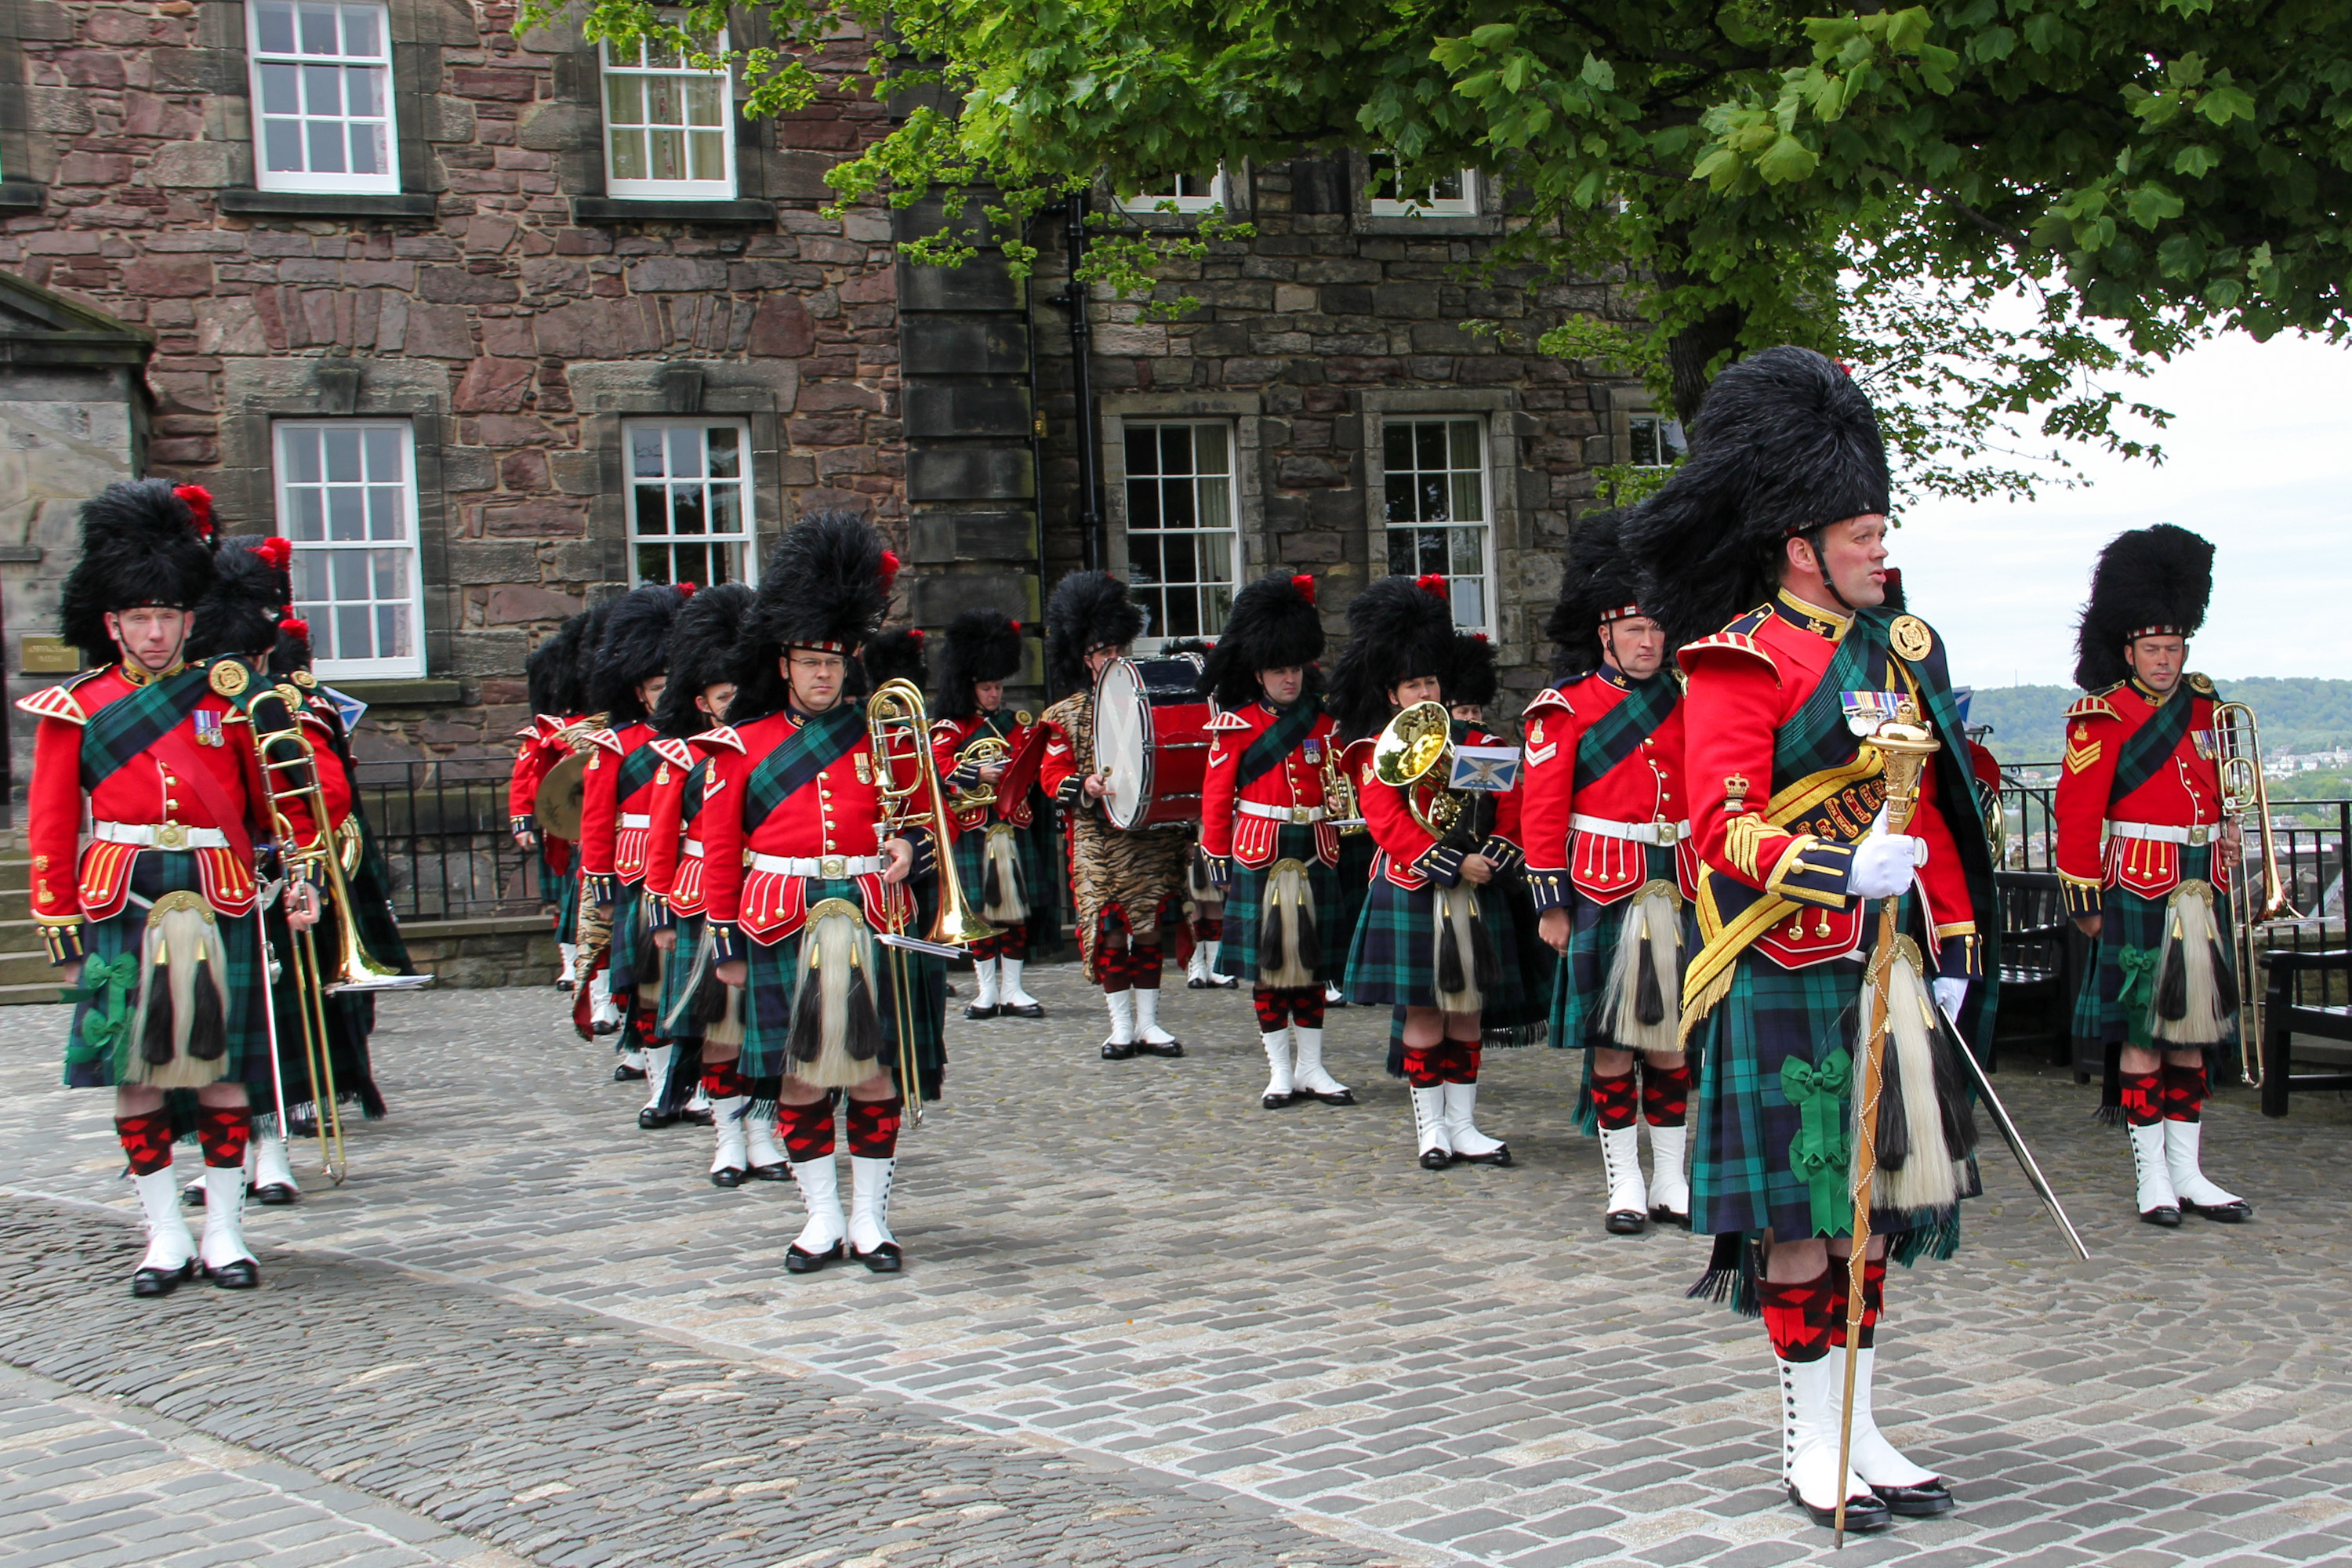 dsc marines tattoo the edinburgh bands borders royal without military at coloring